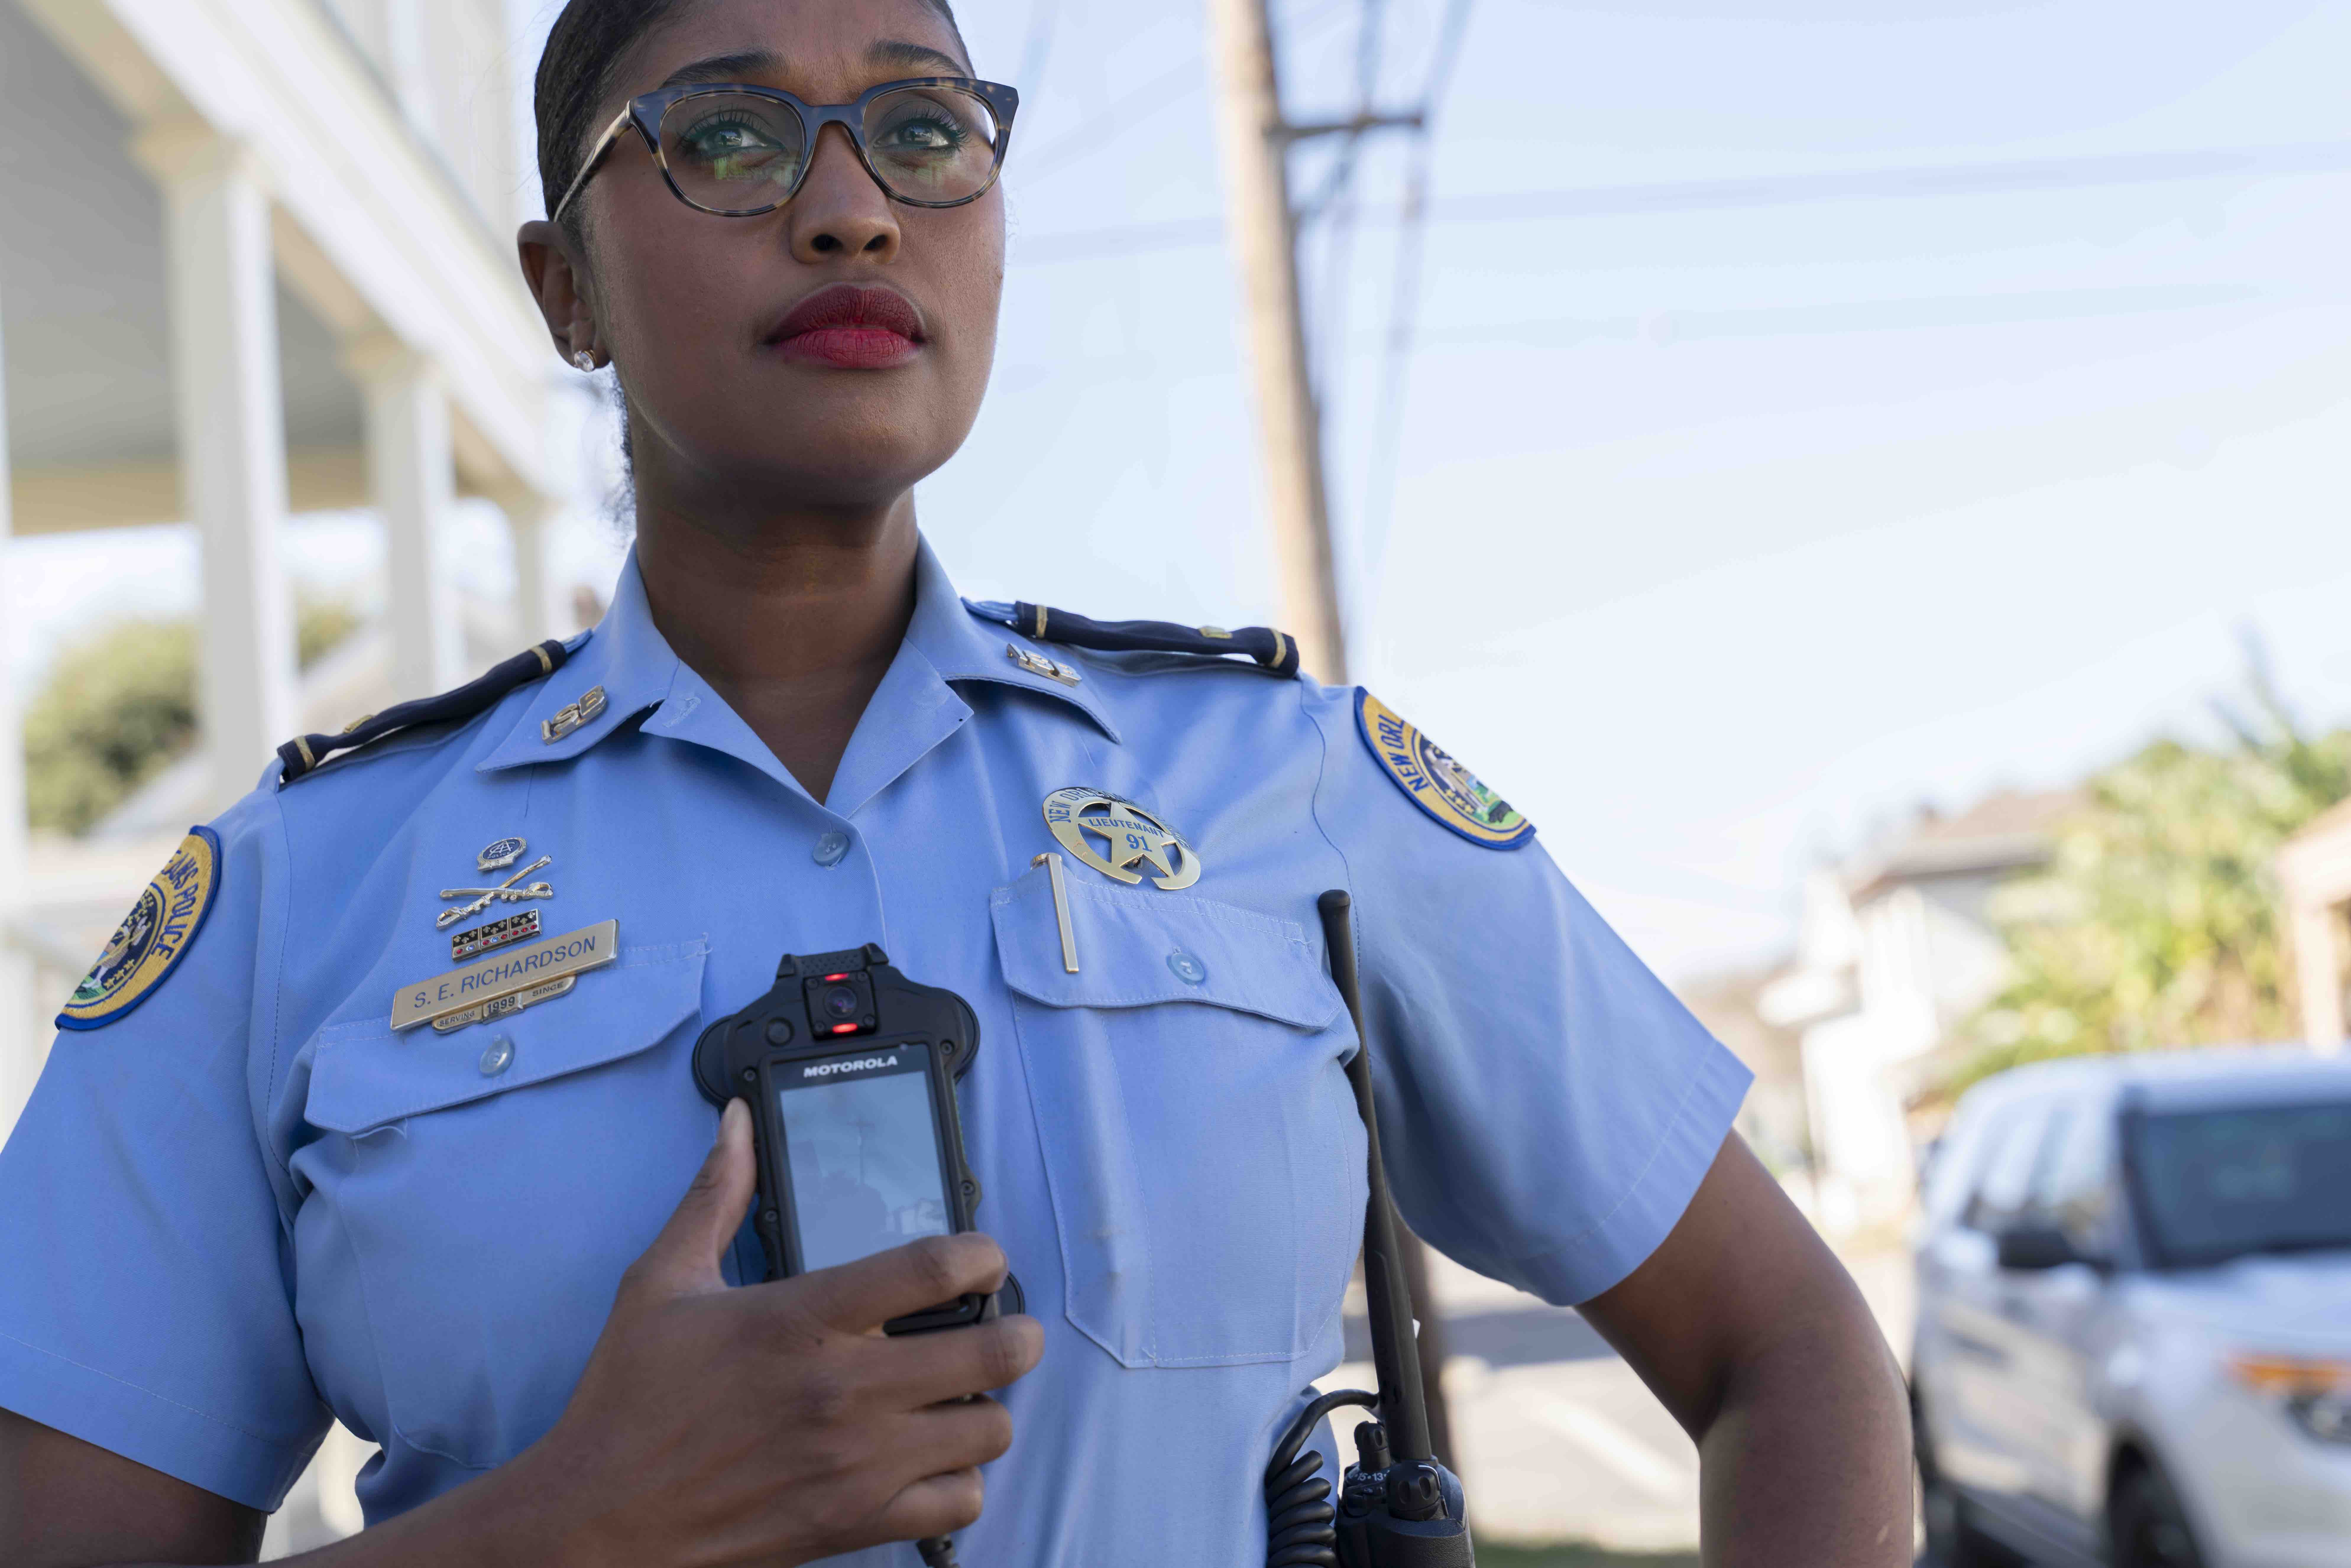 Conduct cost benefit of body worn cameras